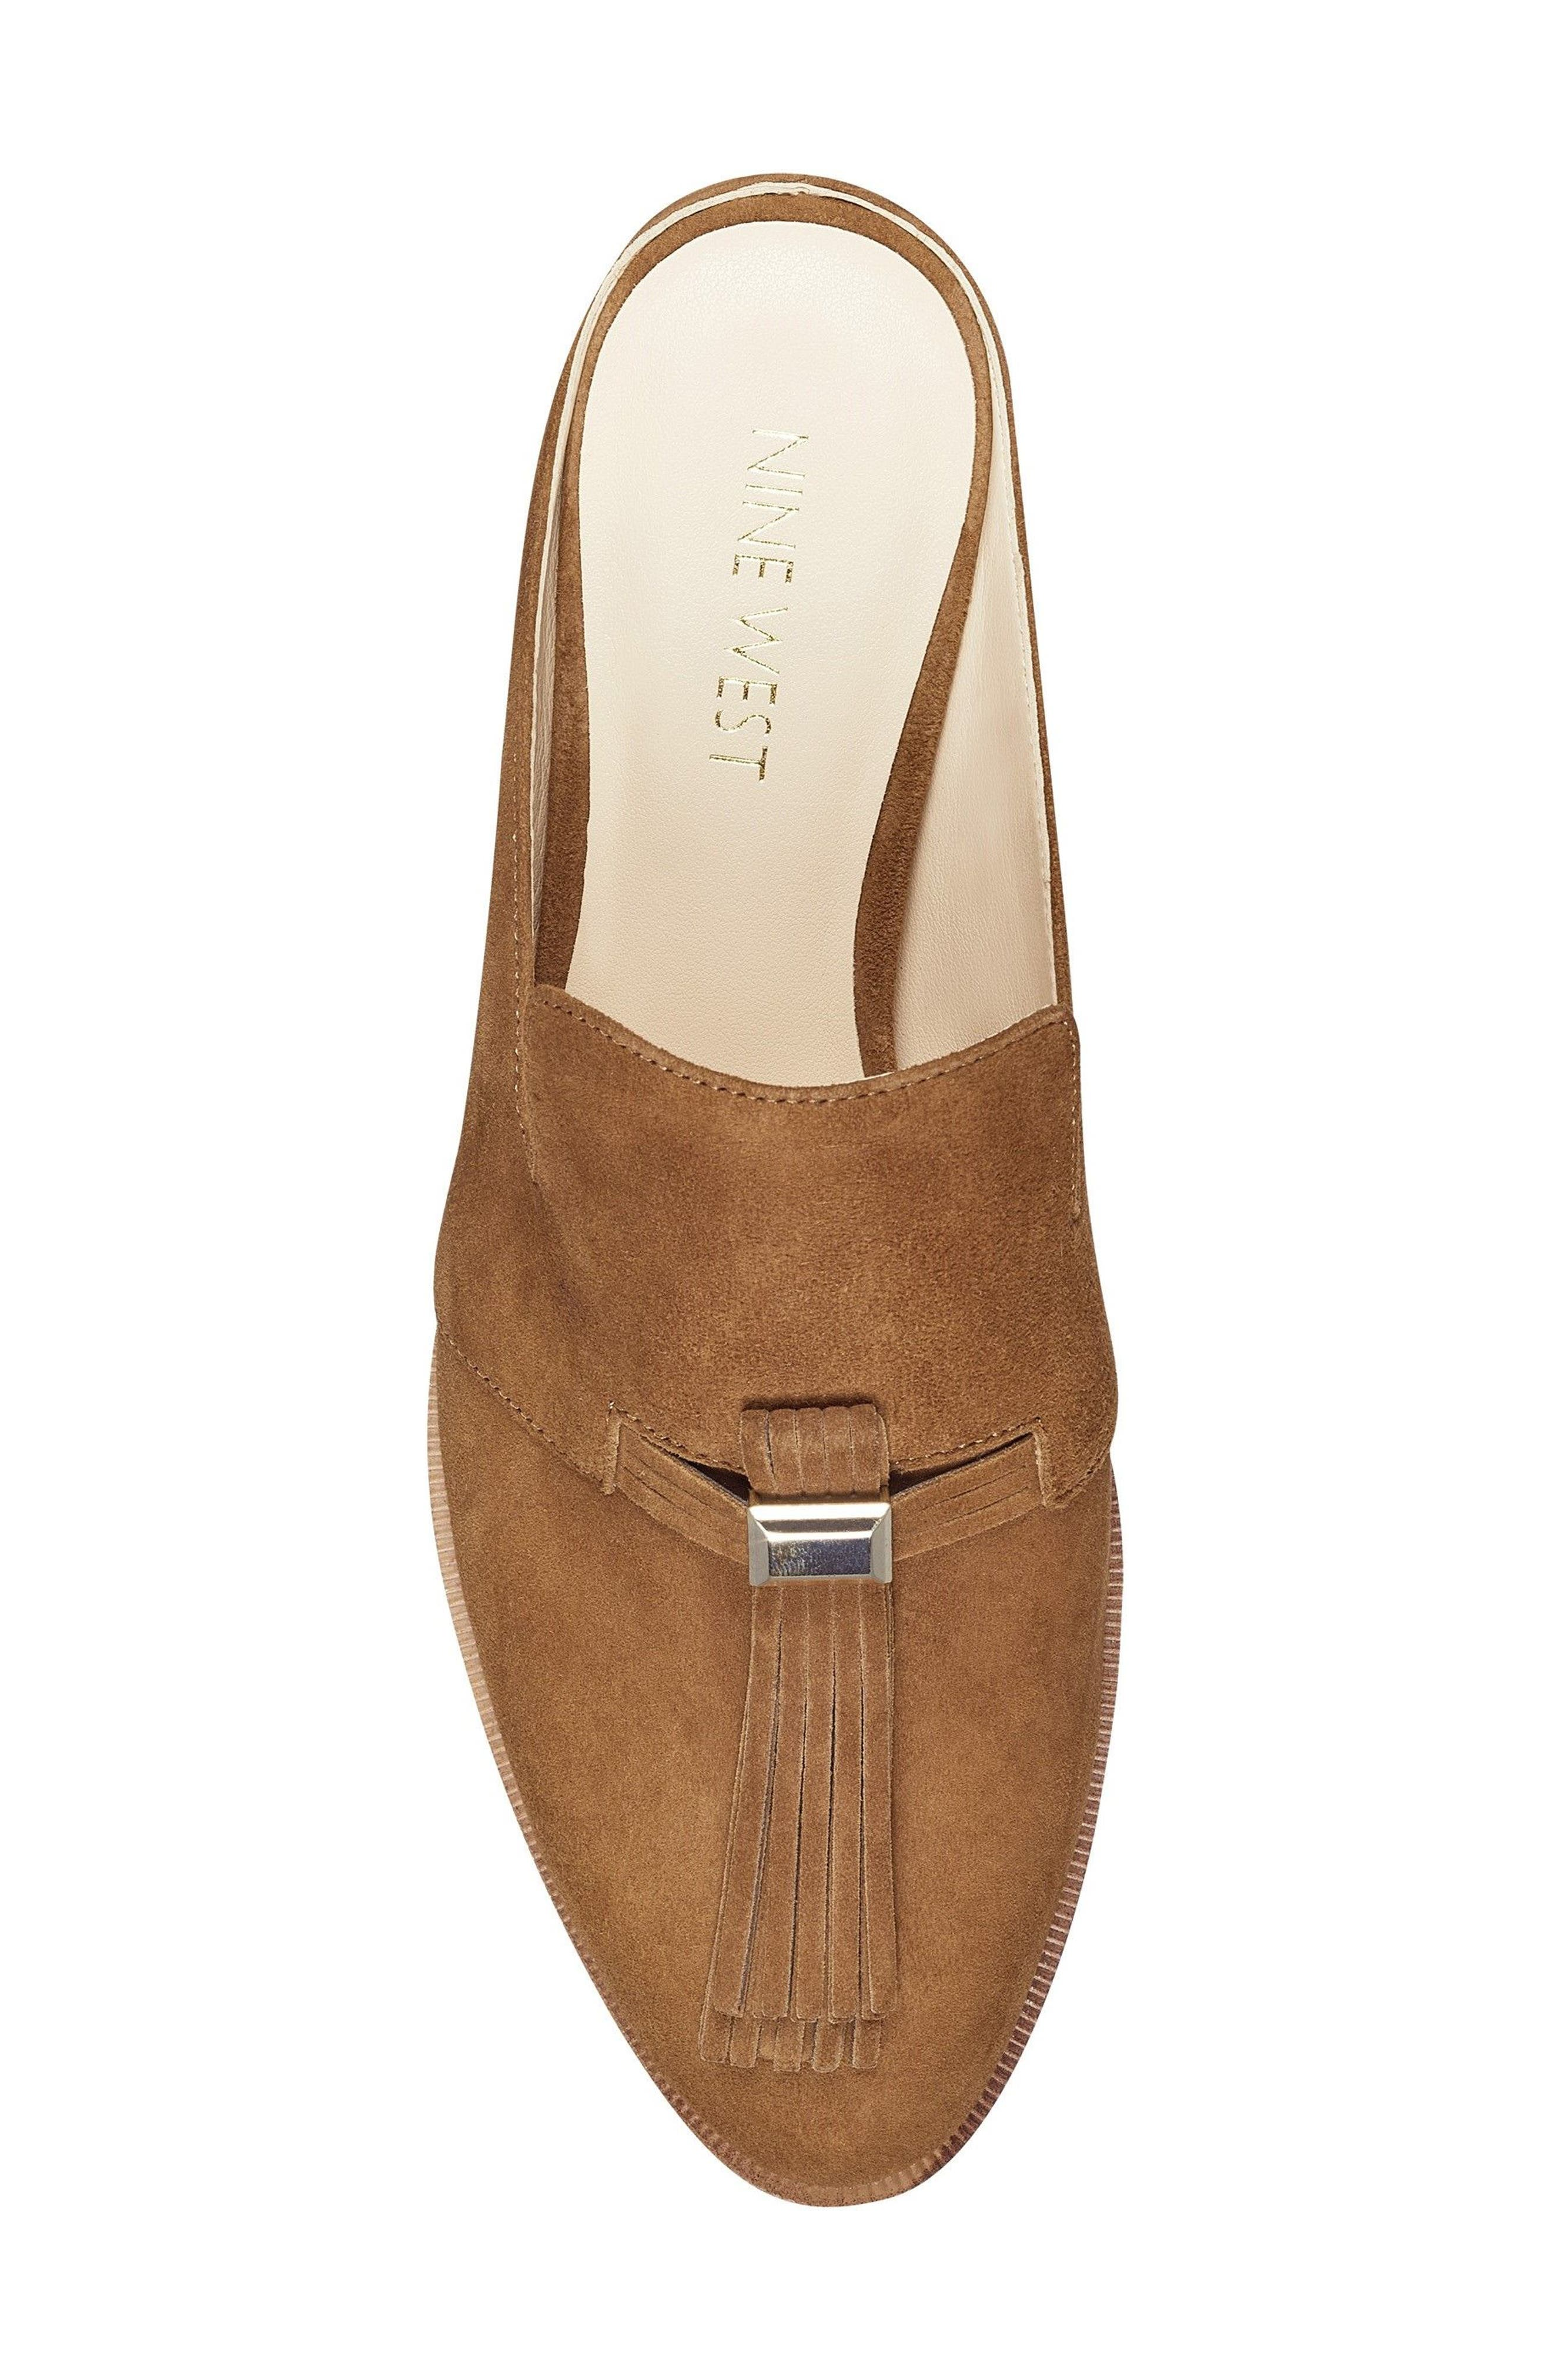 Huebart Loafer Mule,                             Alternate thumbnail 5, color,                             Brown Suede